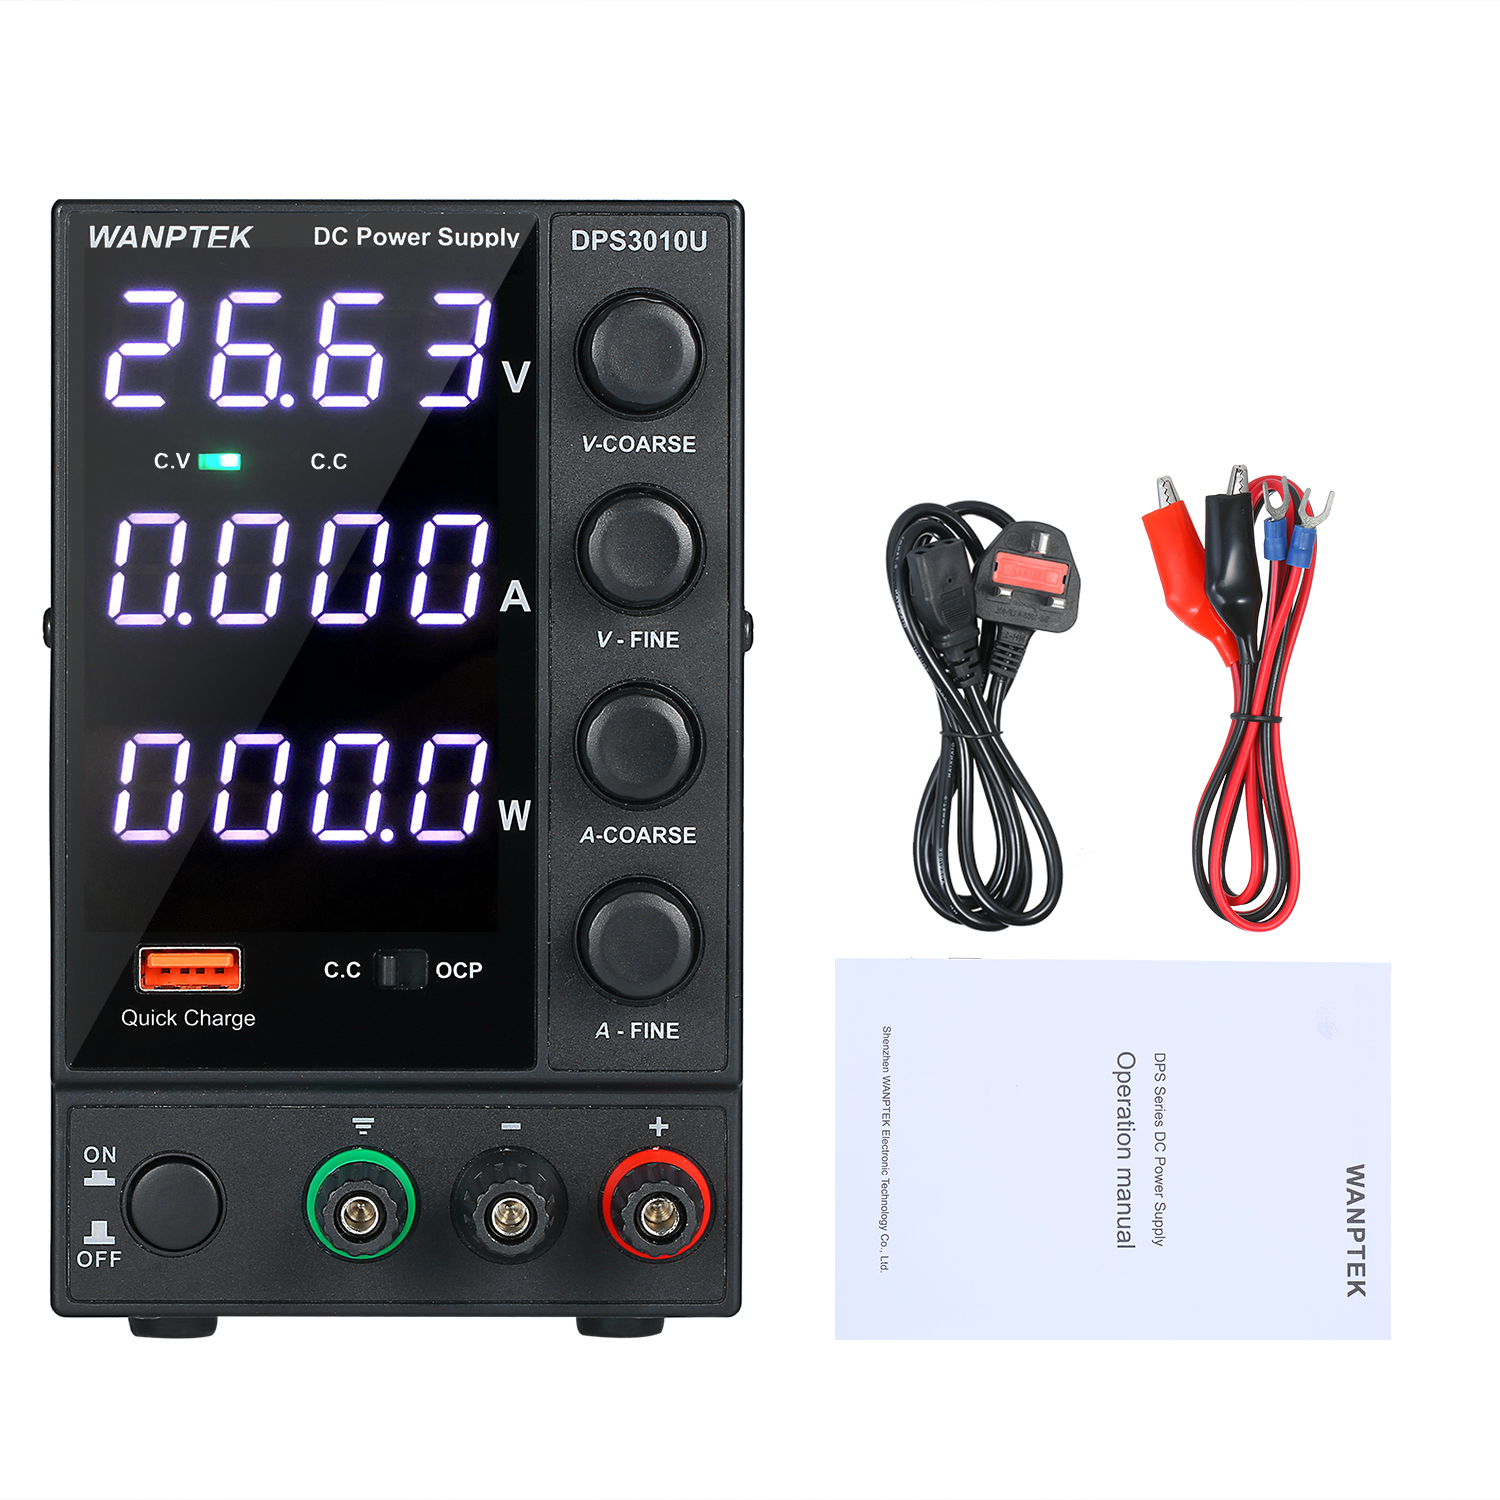 WANPTEK DPS3010U 0-30V 0-10A 300W Switching DC Power Supply 4 Digits Adjustable Mini Power Supply AC 115V/230V 50/60Hz